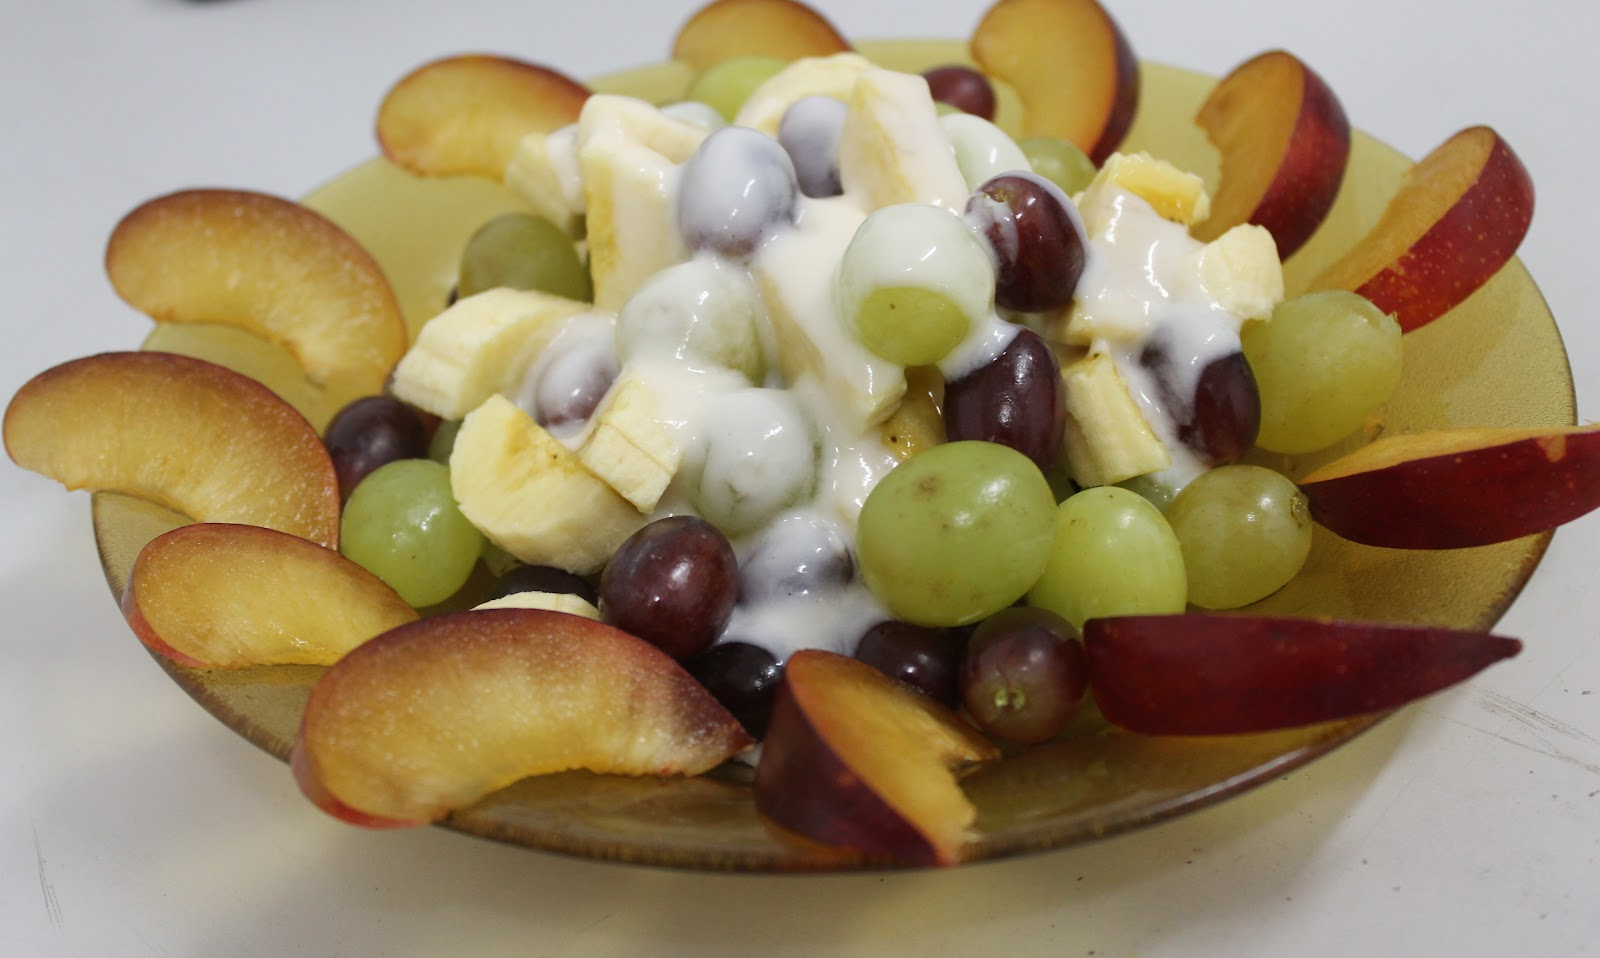 Banana and Grapes Salad with Yogurt - Mely's kitchen